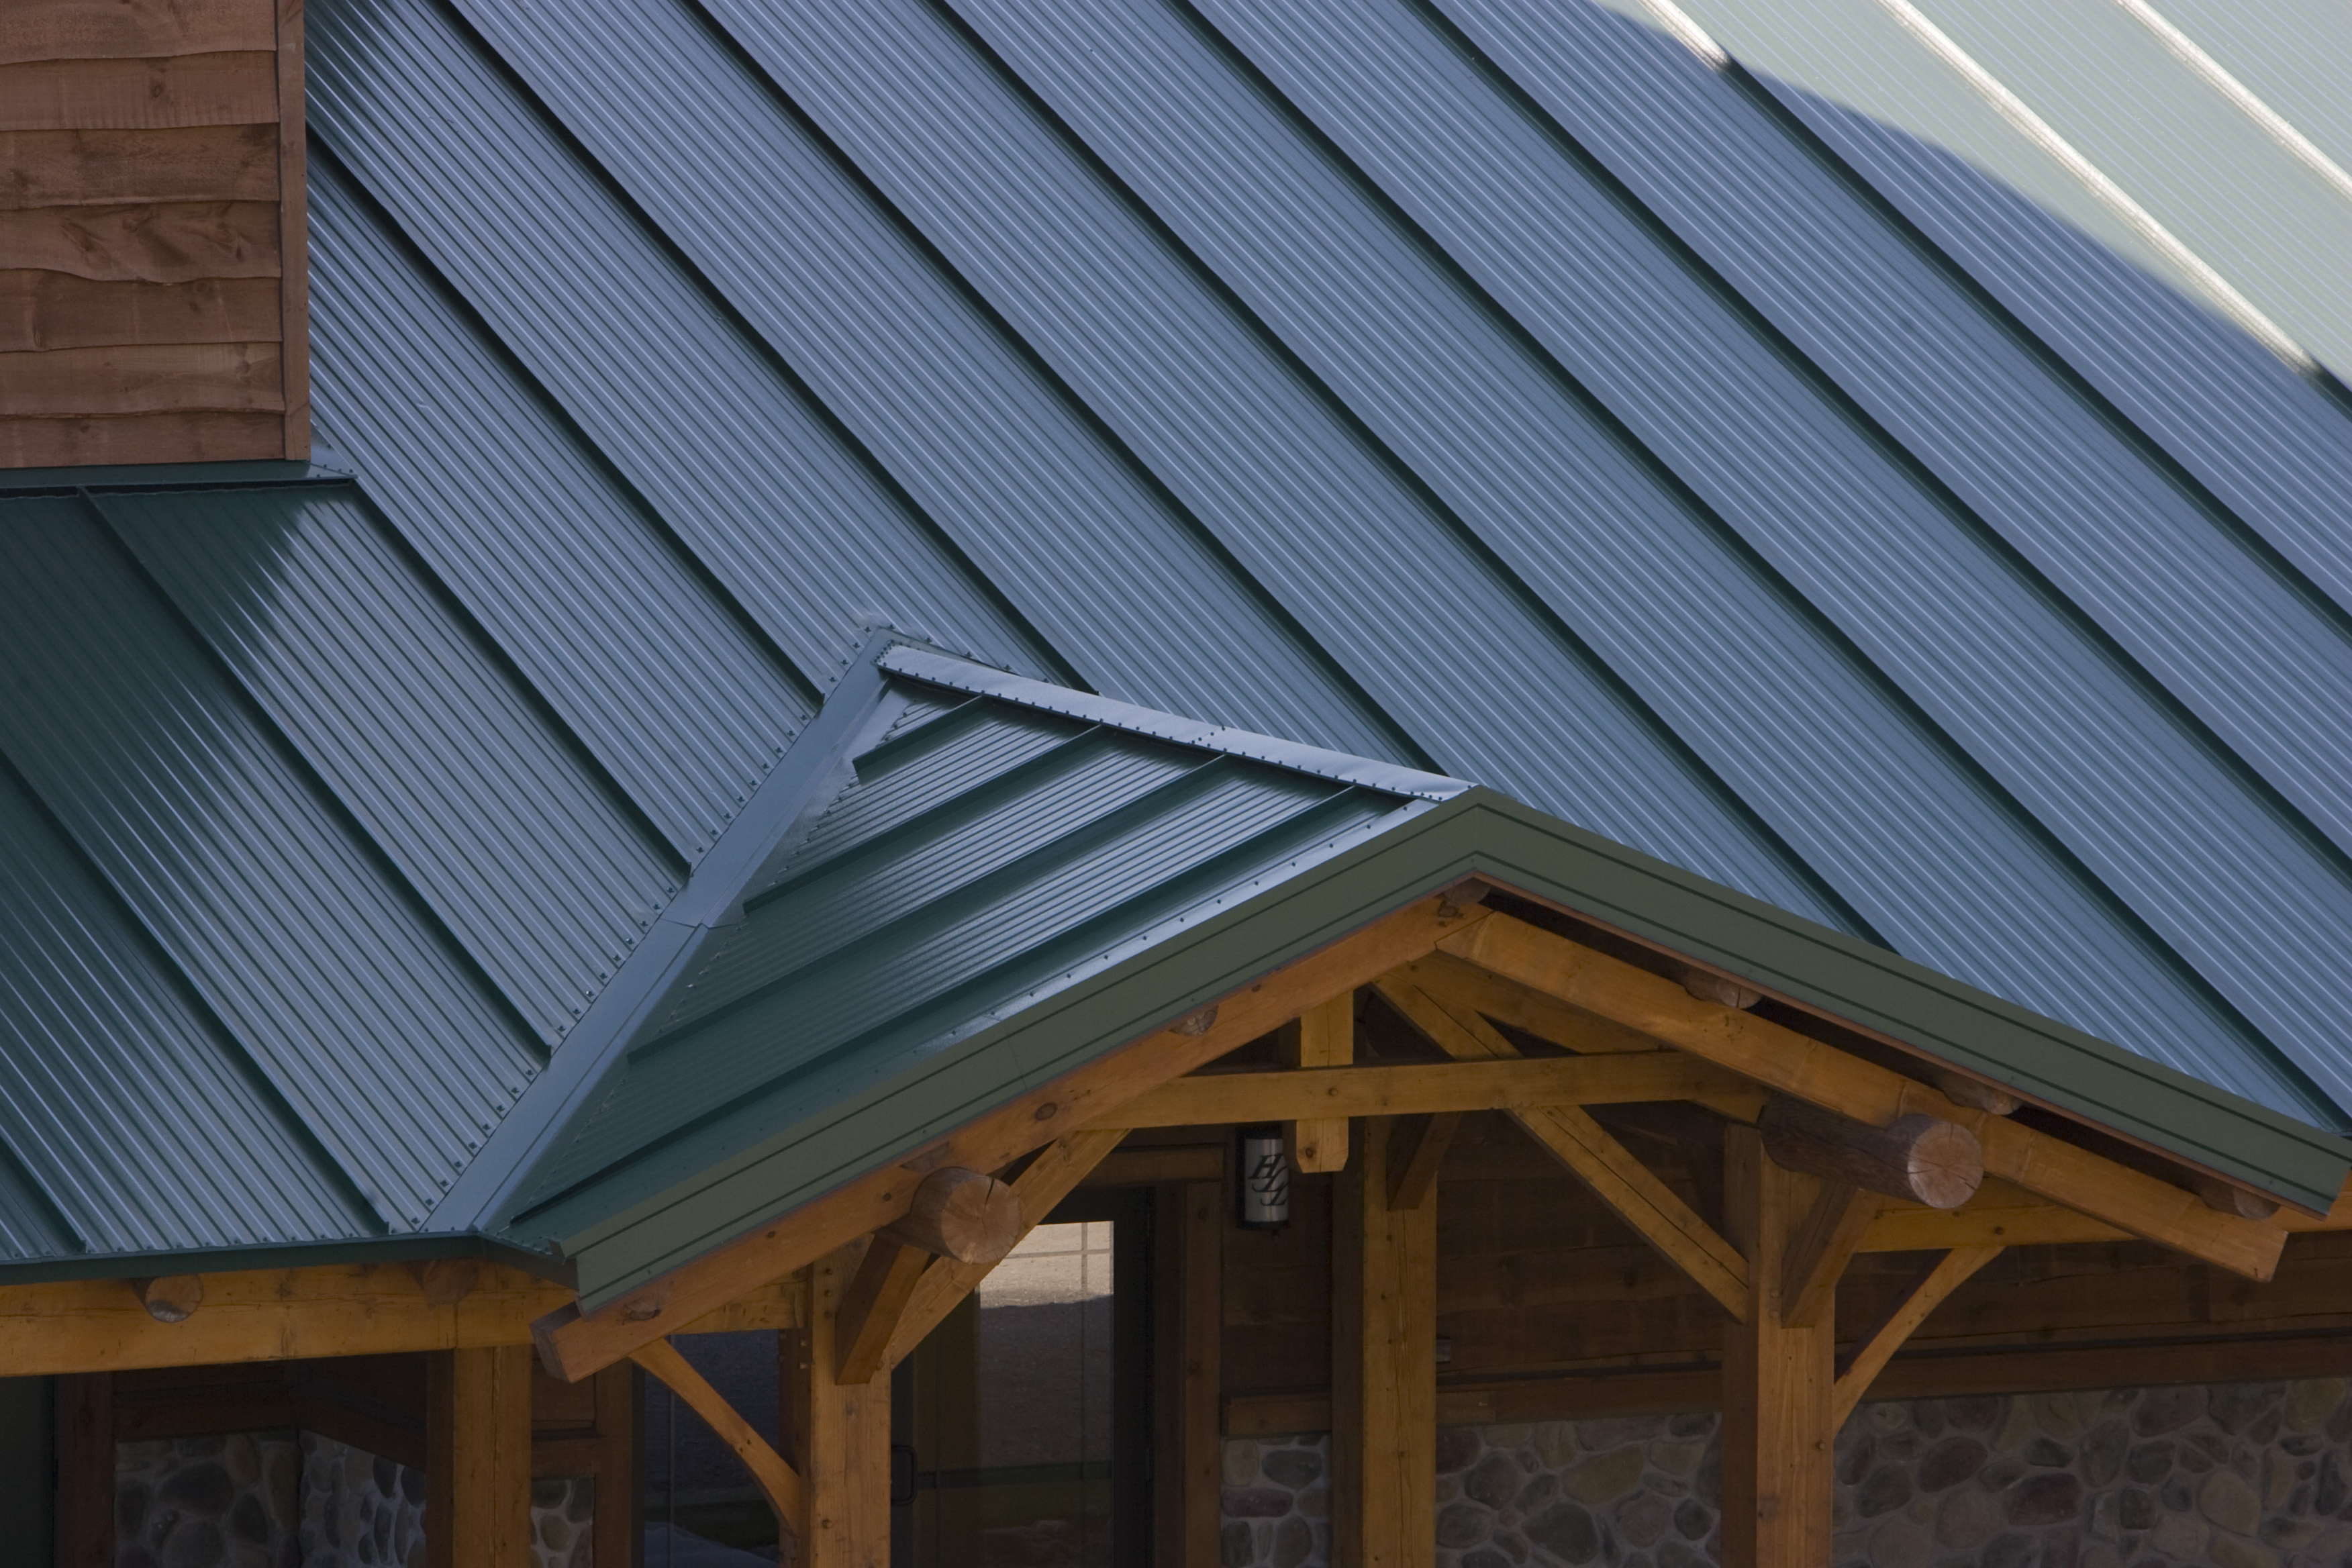 Hope Lake Lodge Metl Span Insulated Wall Panels Roof